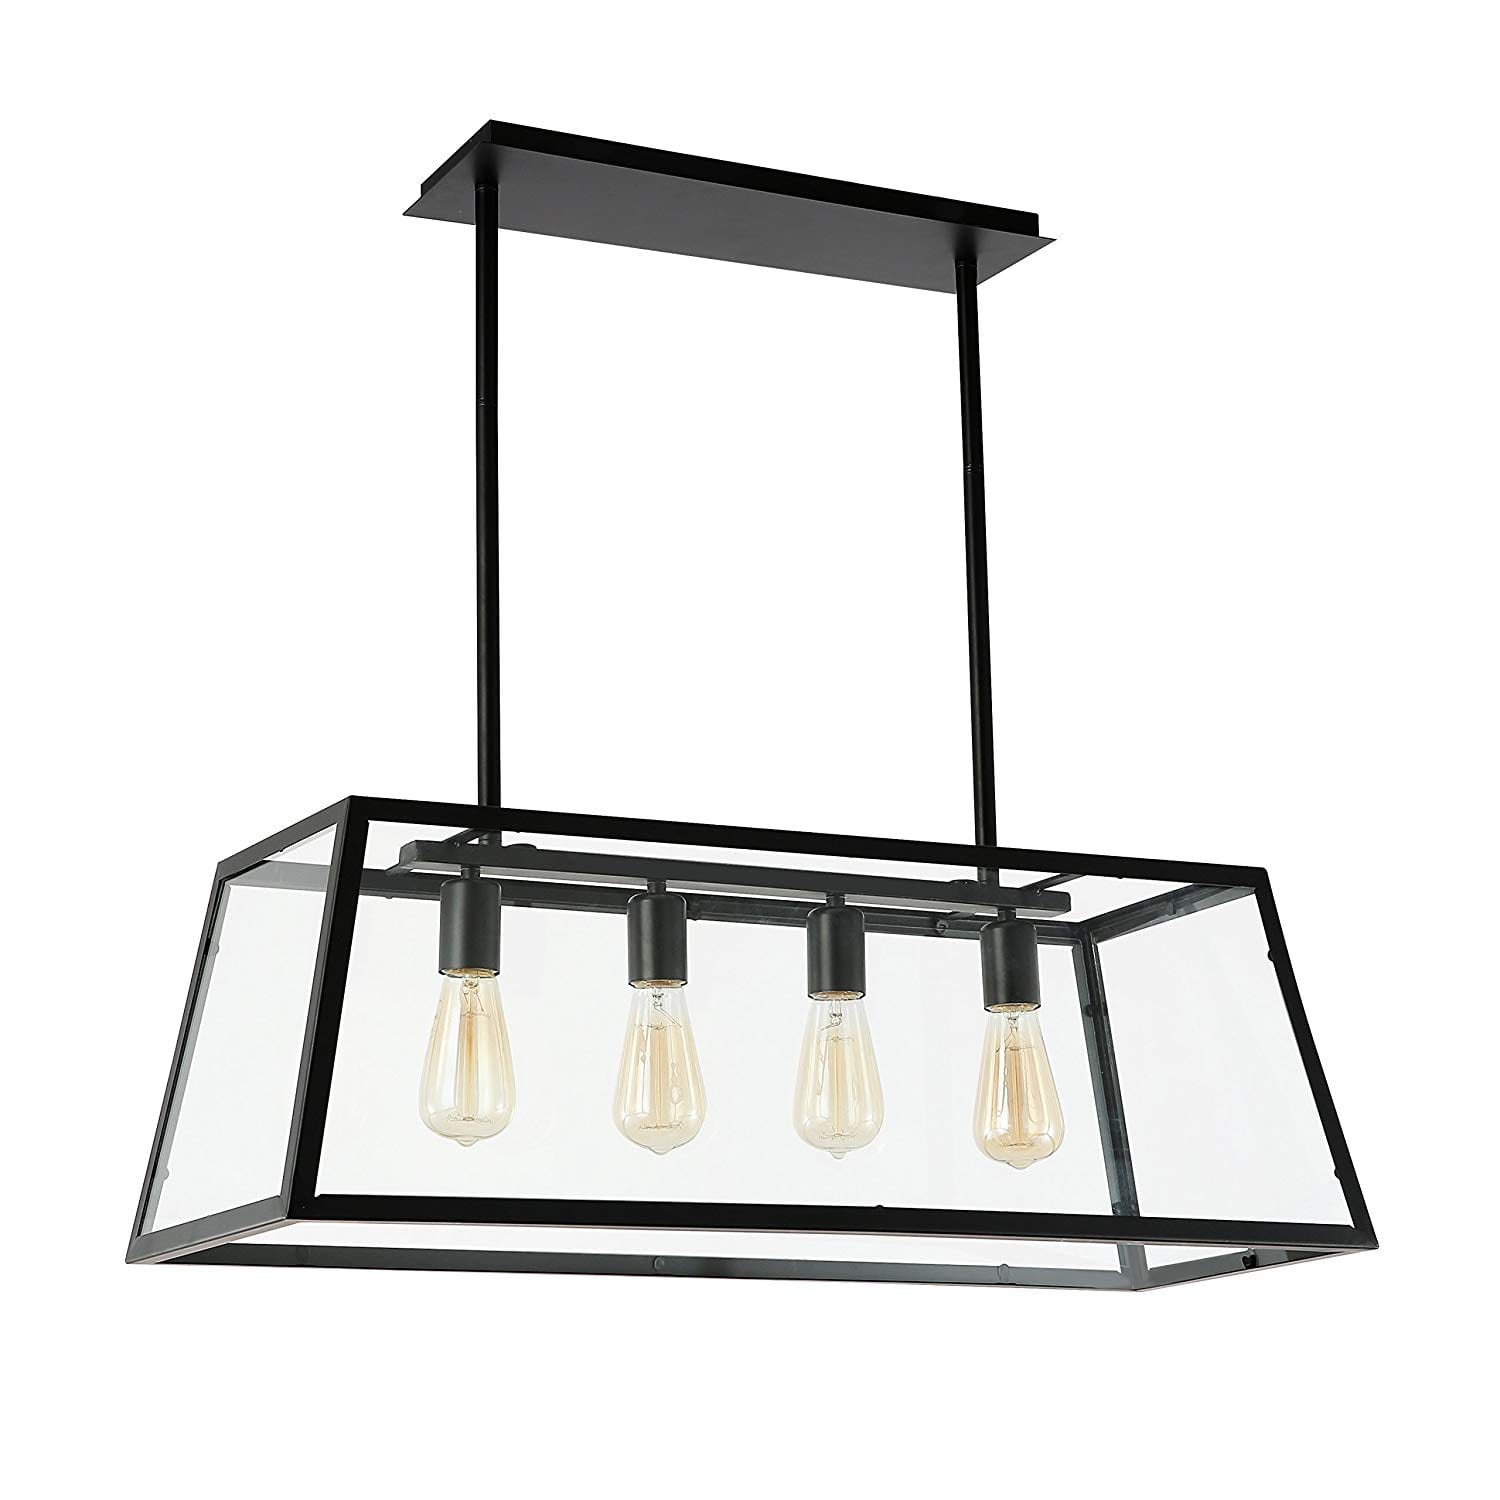 Light Society Morley (LS-C104) 4-Light Kitchen Island Pendant with Matte Black Shade with Clear Glass Panels